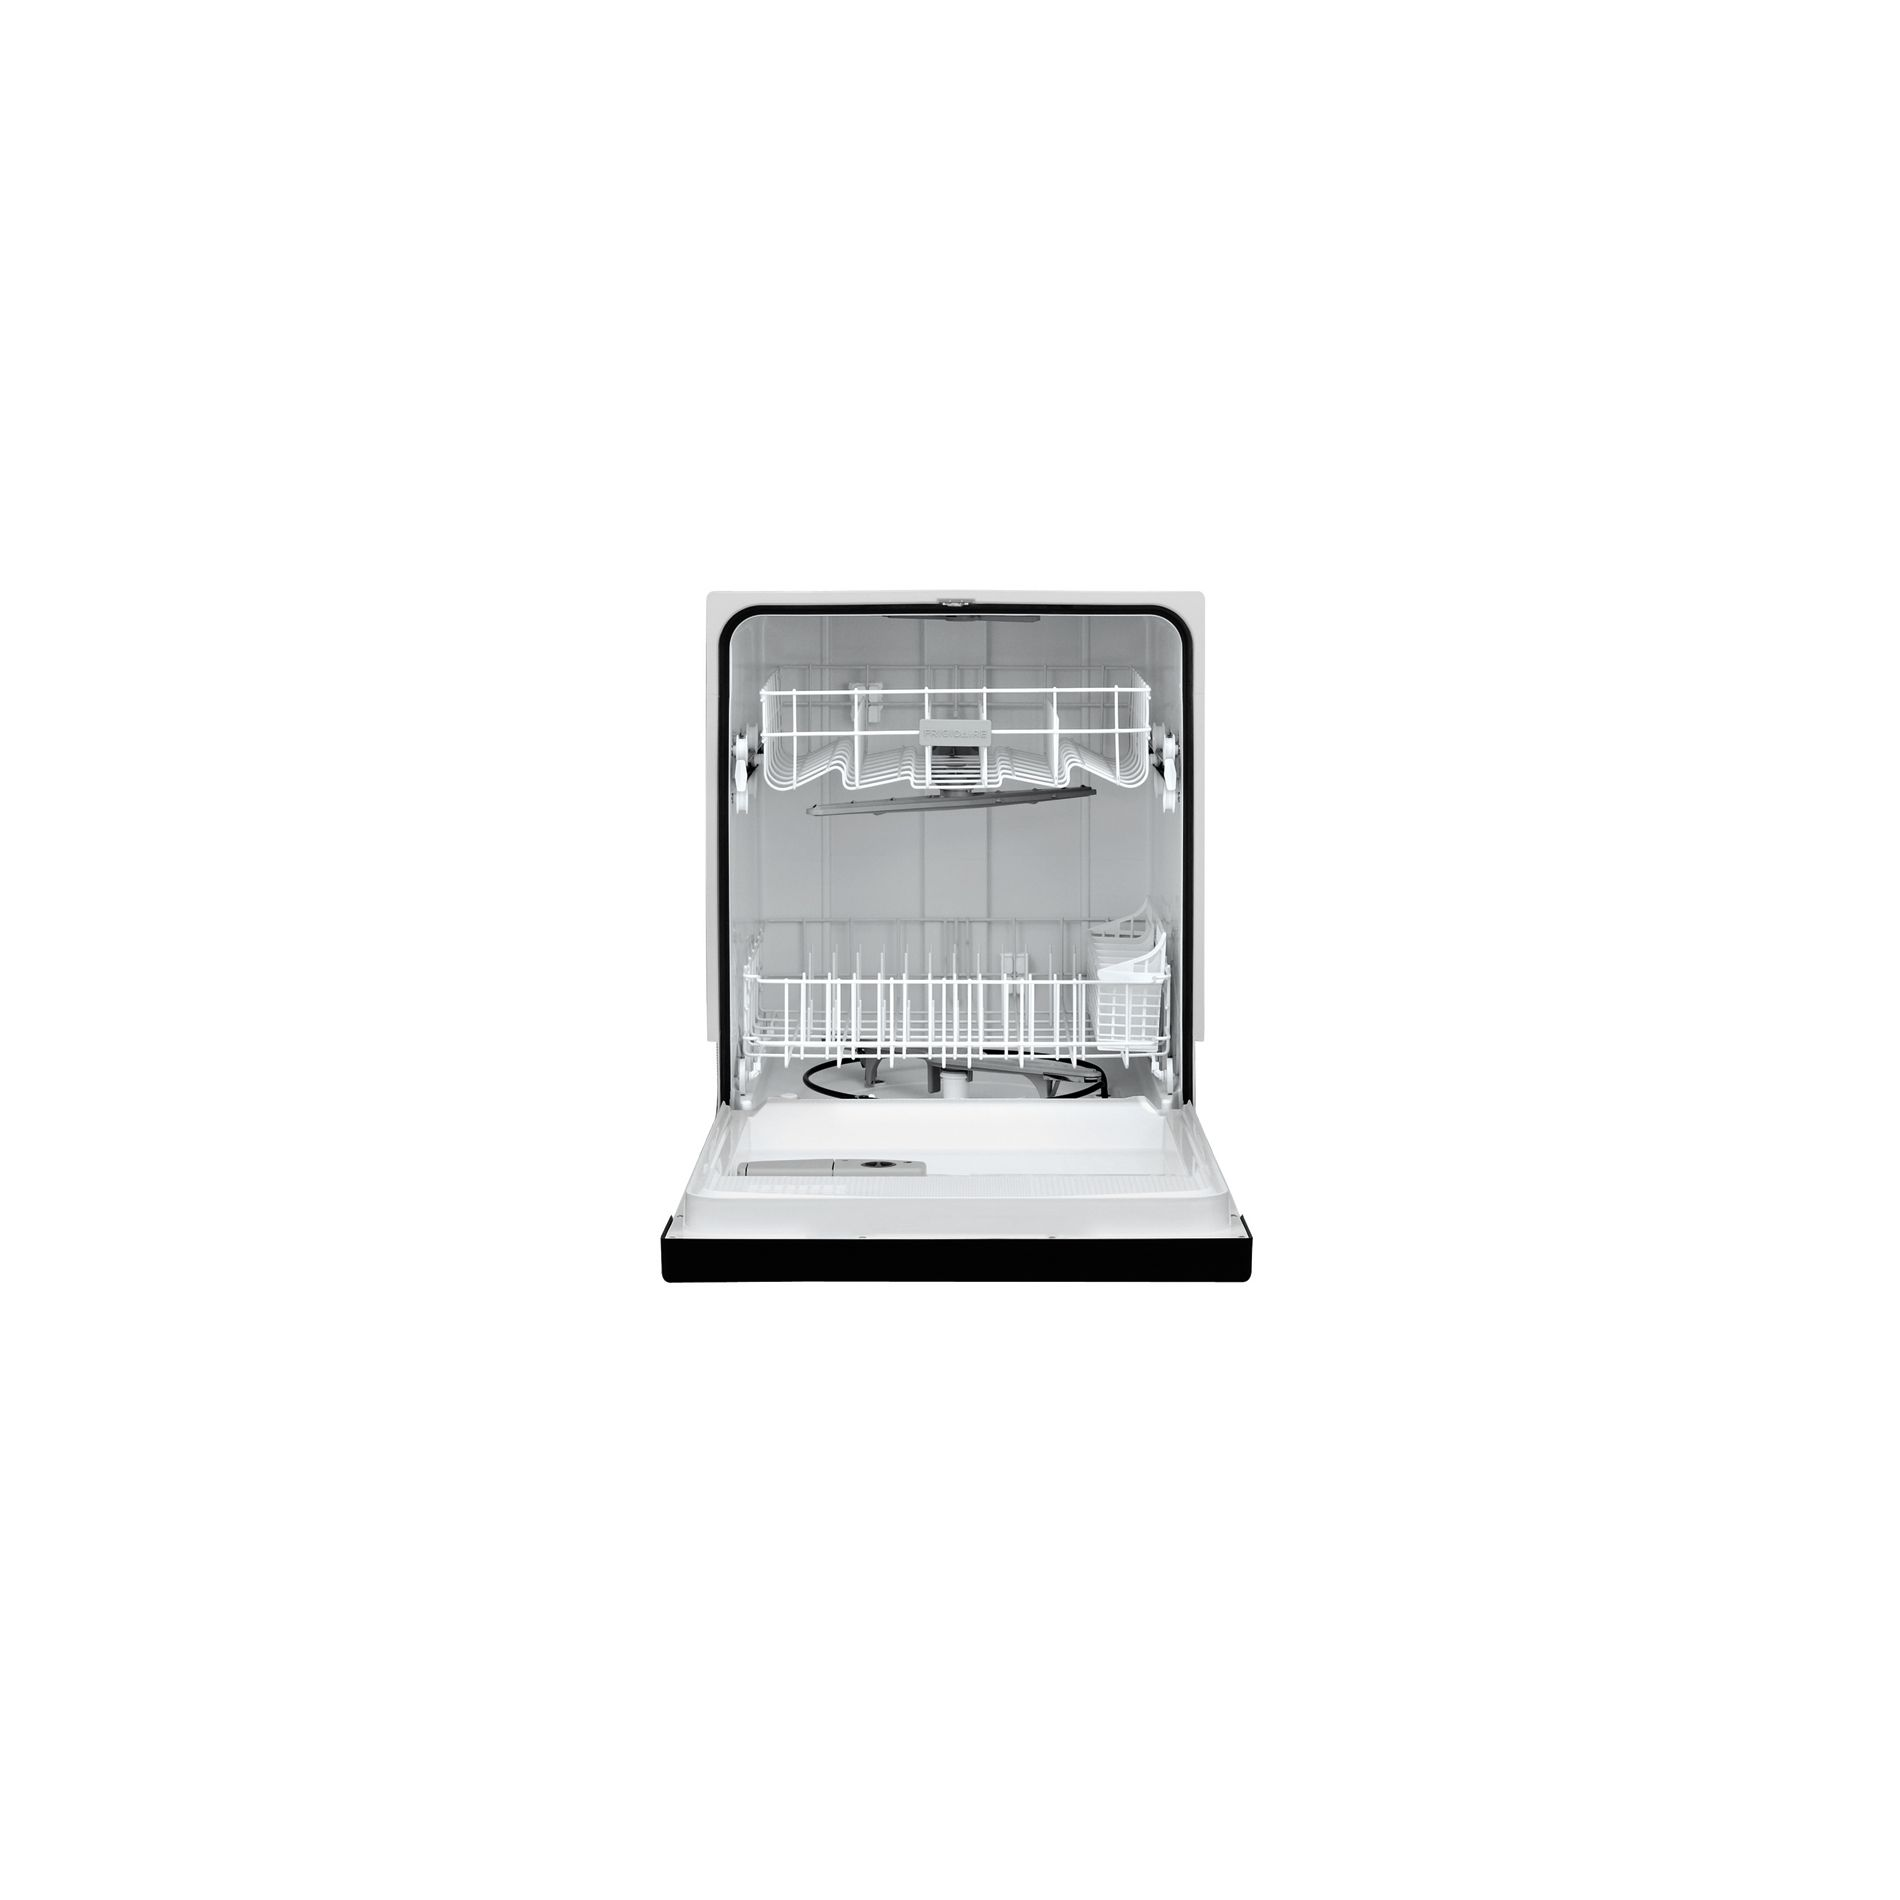 "Frigidaire 24"" Built-In Dishwasher - Black"